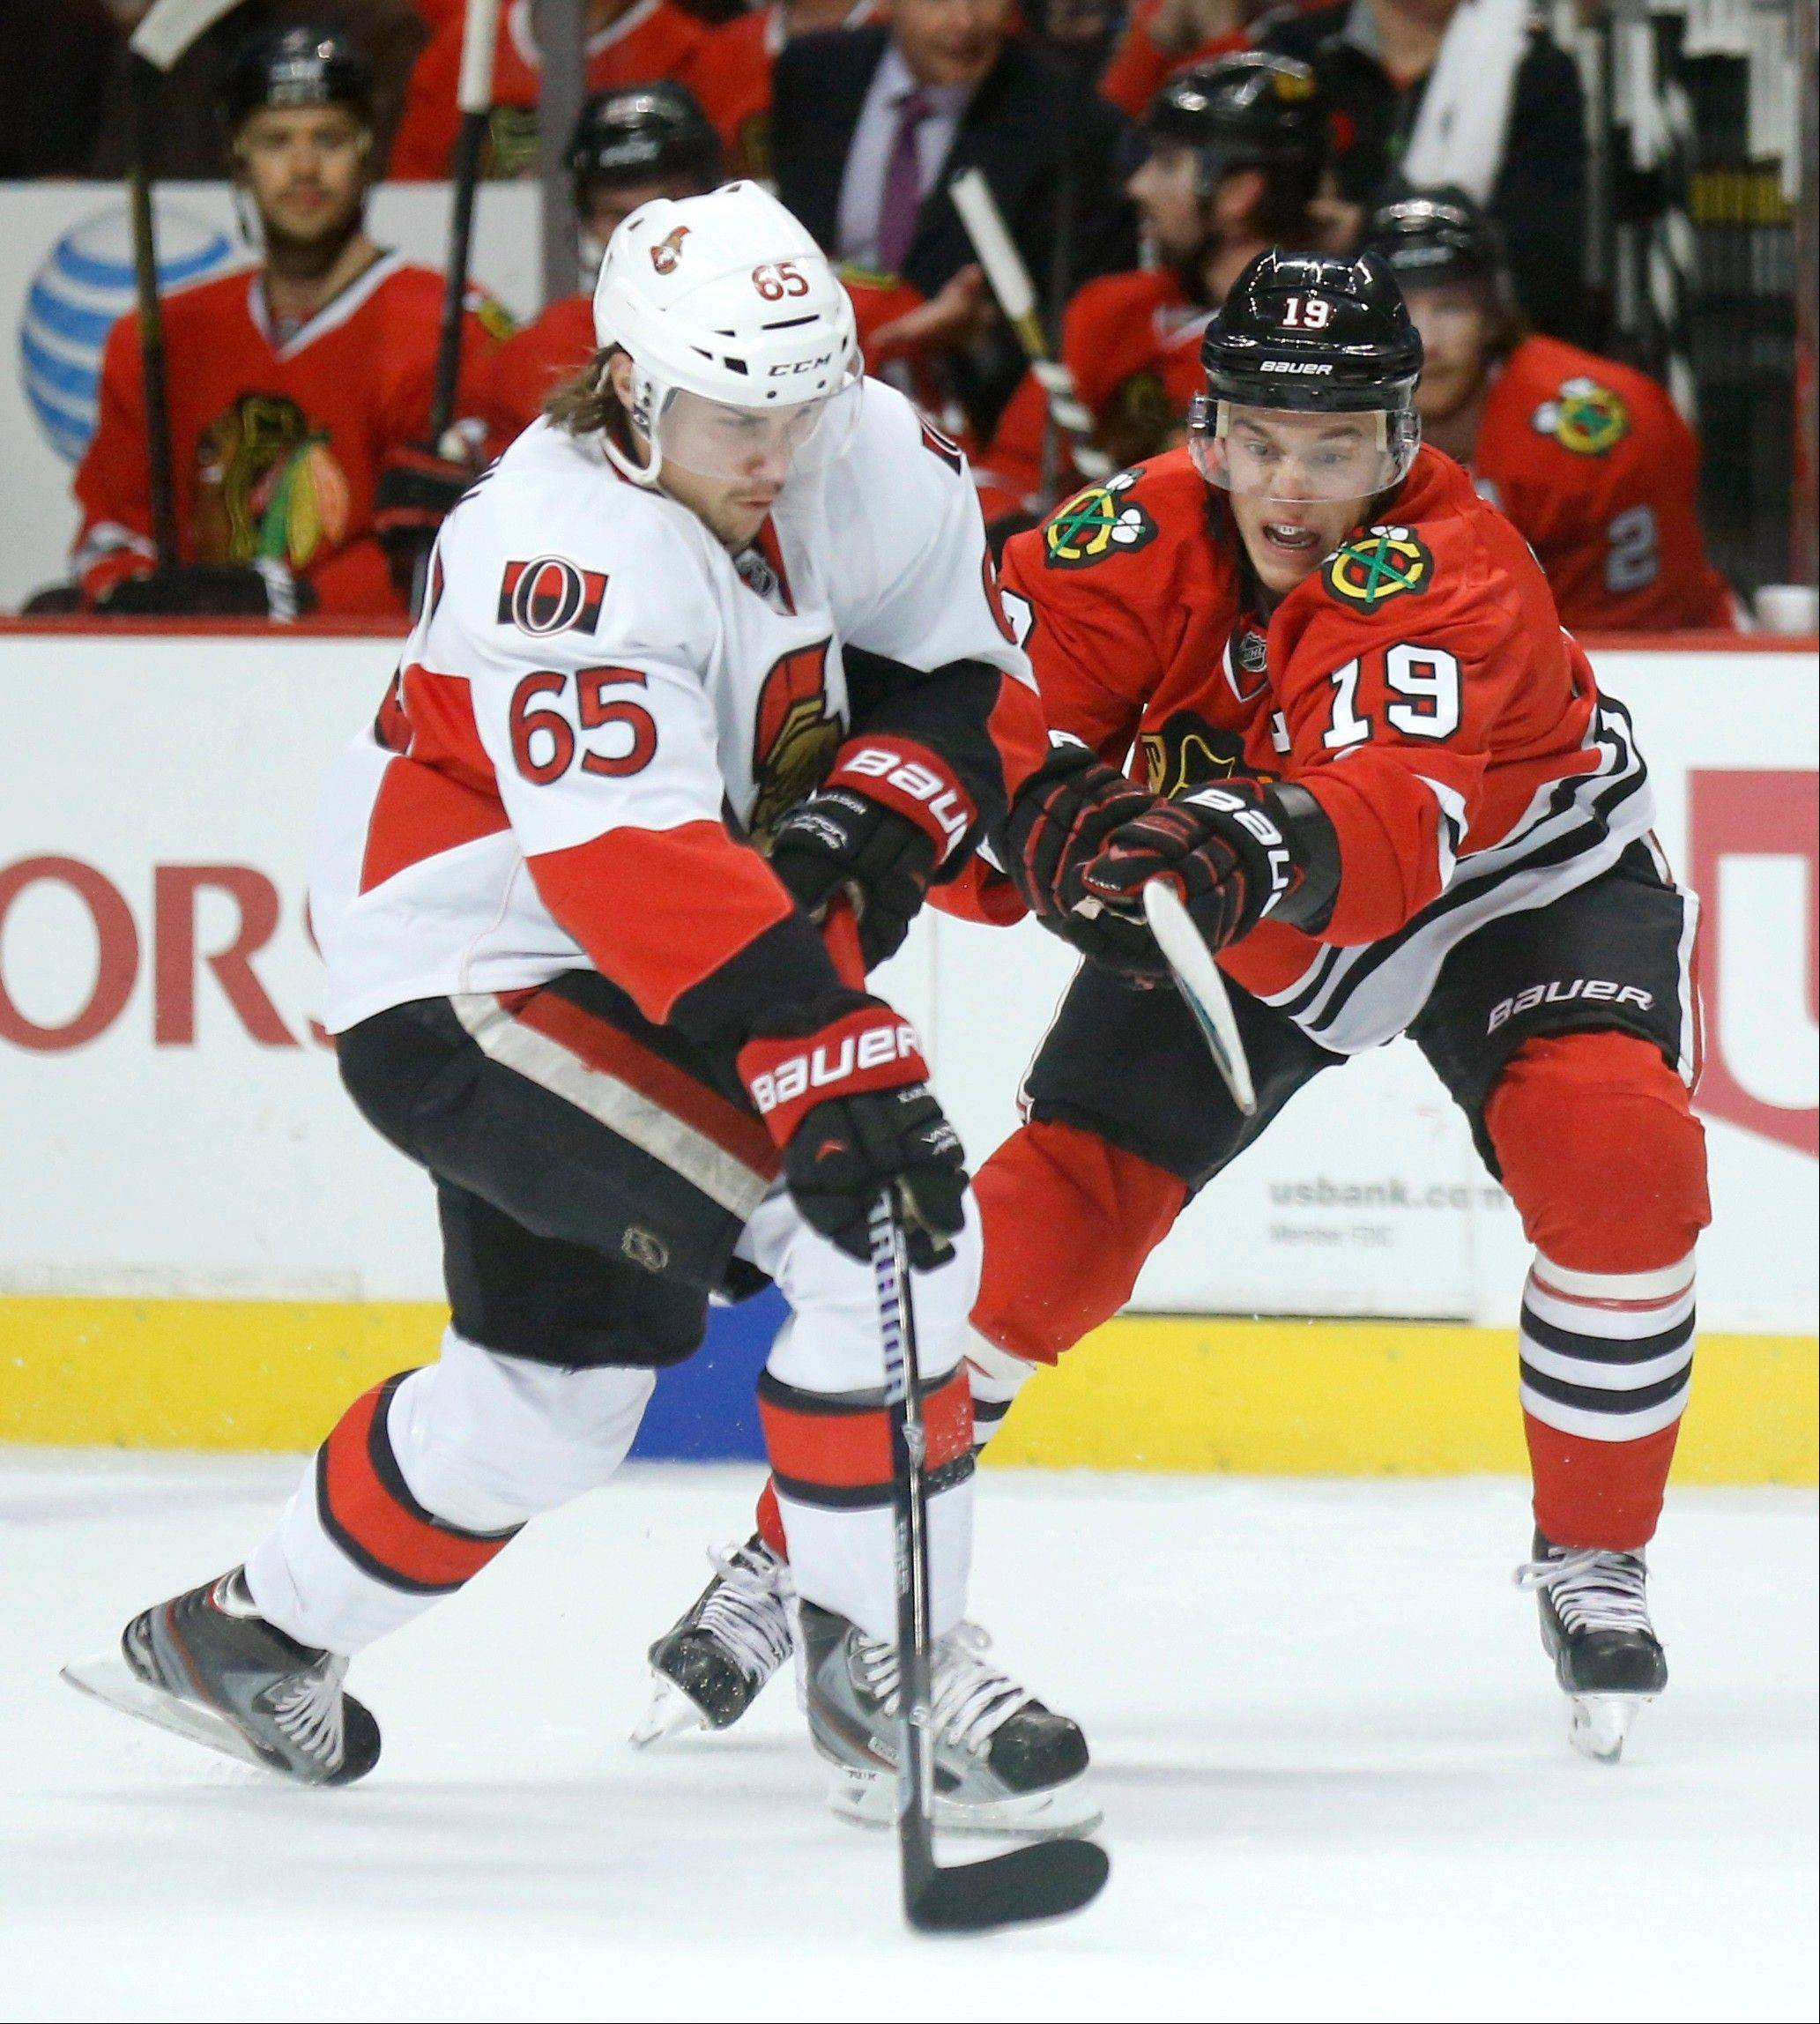 Ottawa Senators defenseman Erik Karlsson (65) passes the puck past Chicago Blackhawks center Jonathan Toews (19) during the first period of an NHL hockey game Tuesday in Chicago. Toews would later get his revenge with three goals during the game and a win over the Senators.